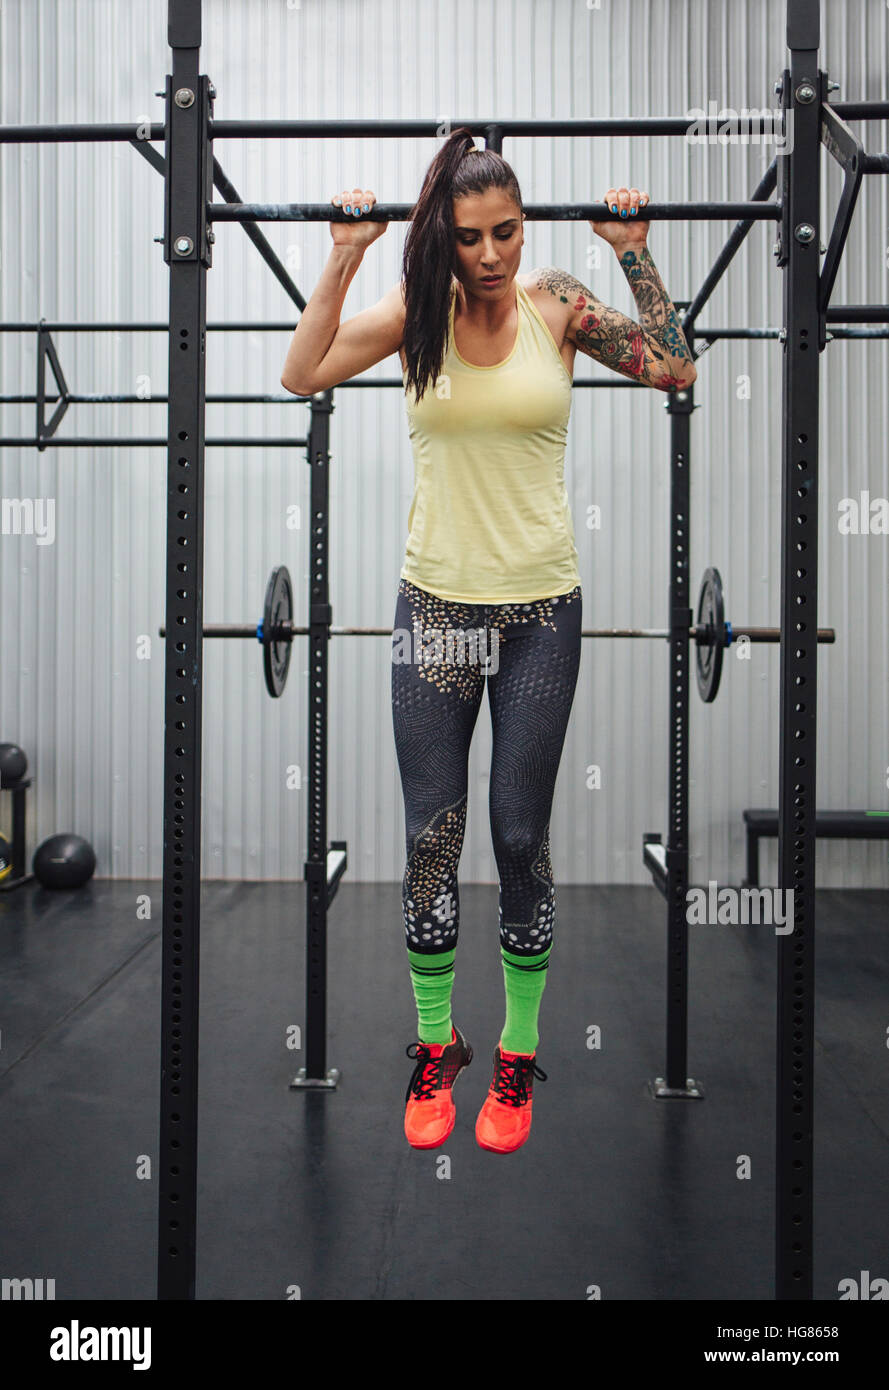 Woman exercising on monkey bars in gym - Stock Image